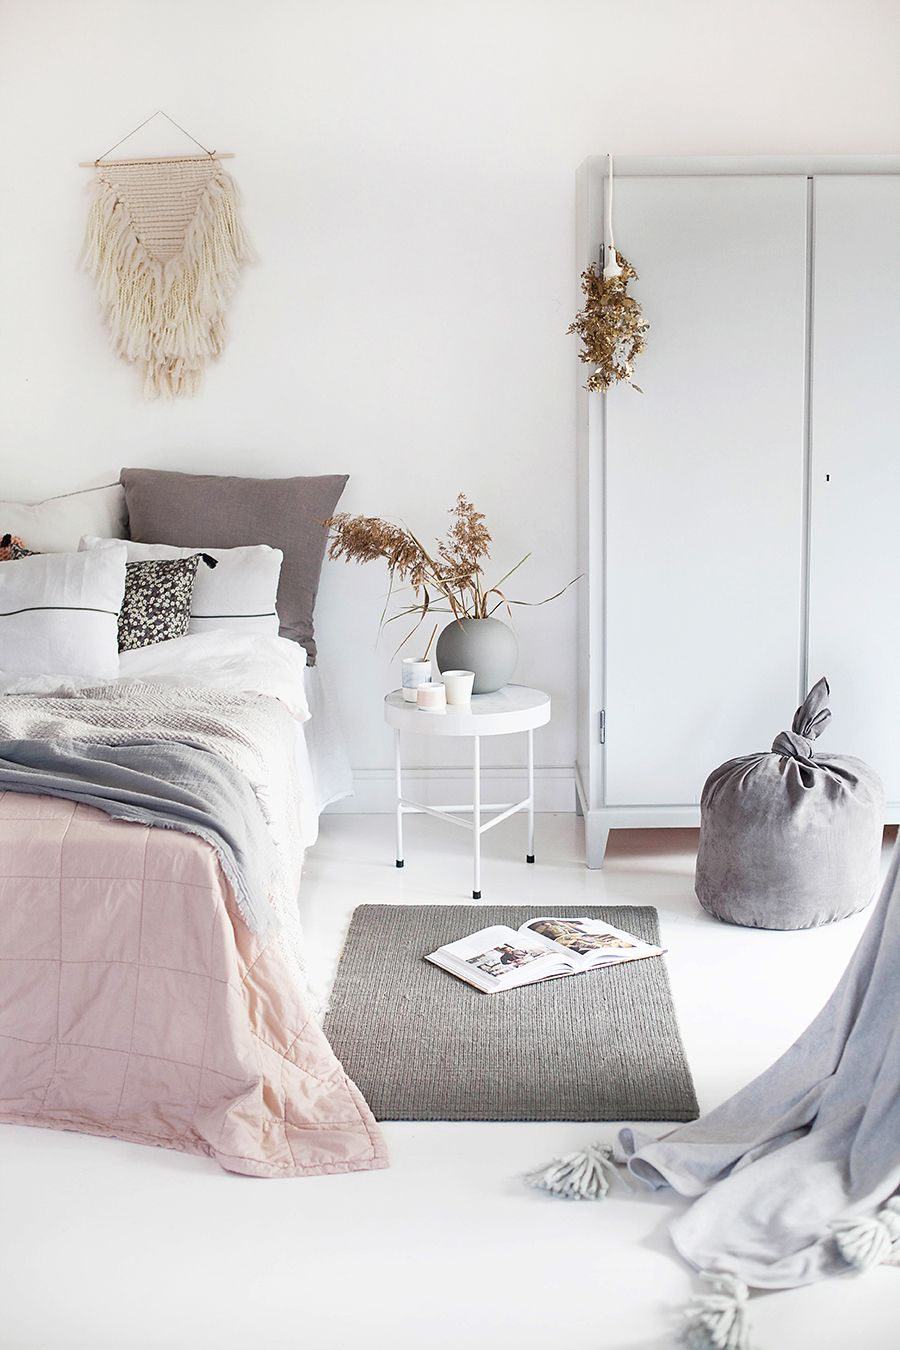 scandinavian interior inspiration   bedroom styling. scandinavian interior inspiration   bedroom styling   Bedroom